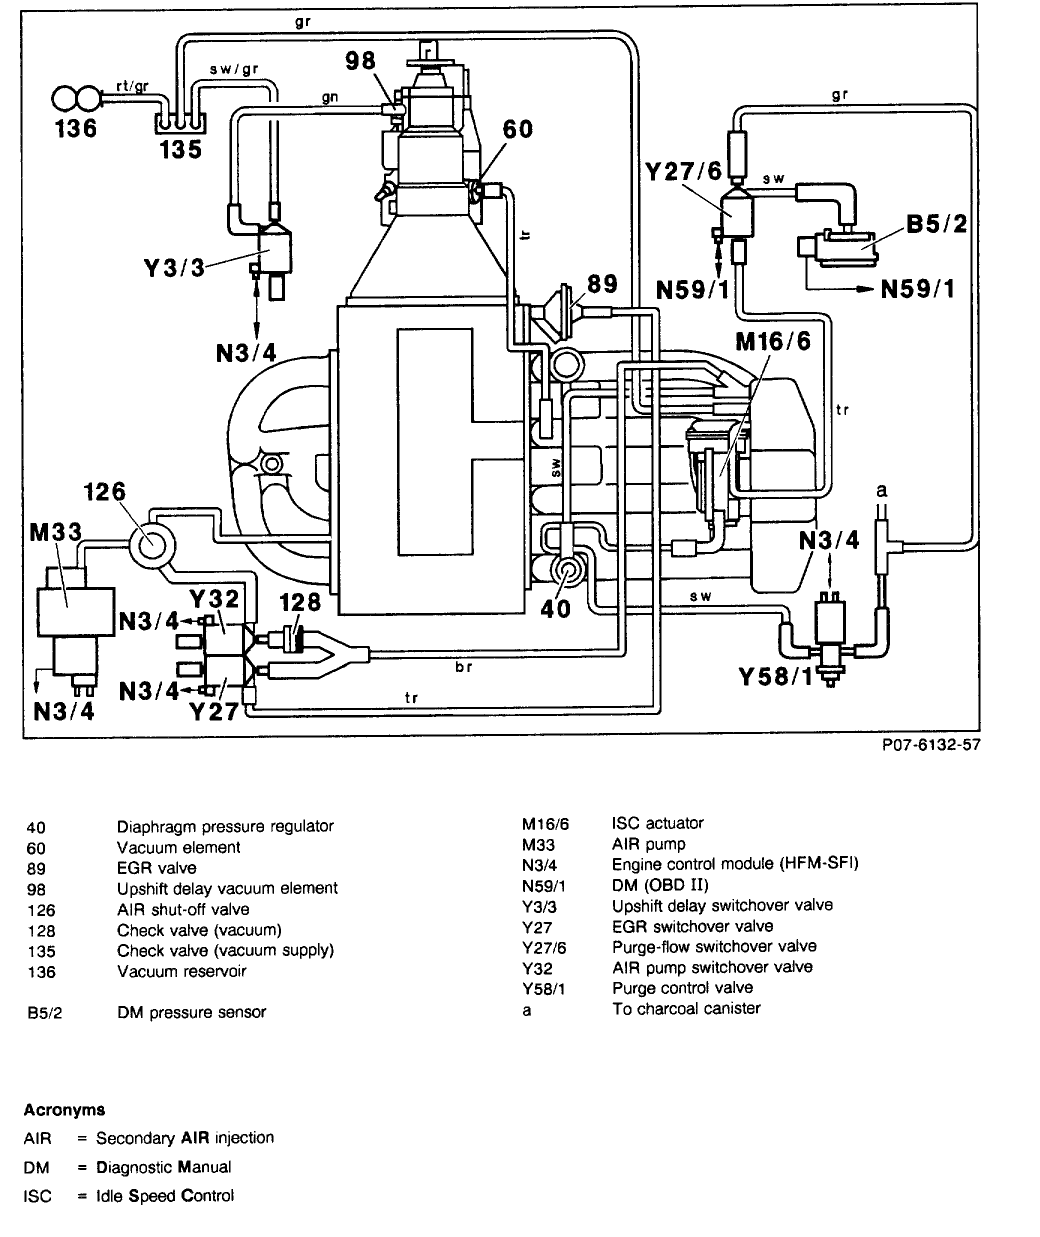 I Have A 96 U0026 39  Mercedes C220 Automatic 4 Cylinder  I Would Like To Have A Detailed Diagram Of The